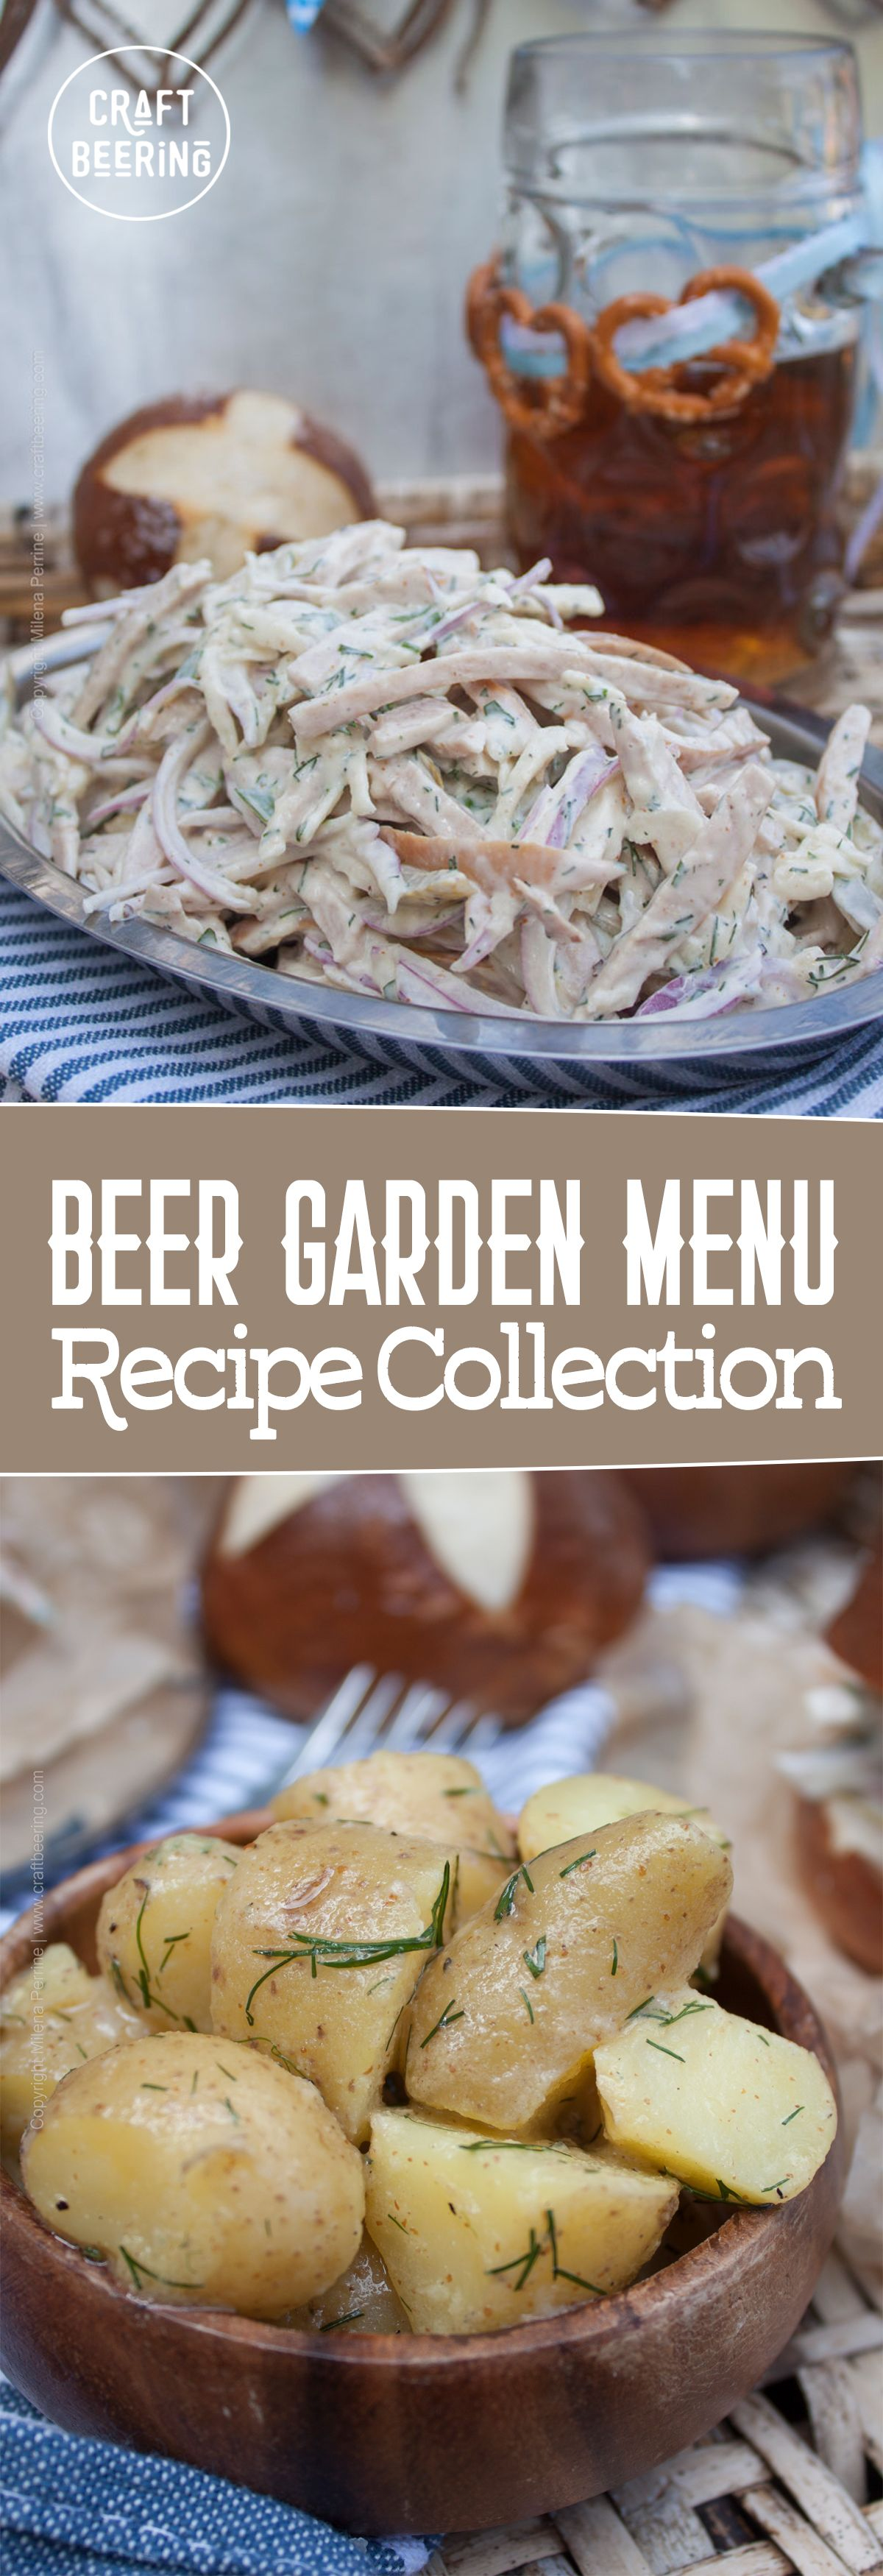 Beer garden food staples. A growing collection of food